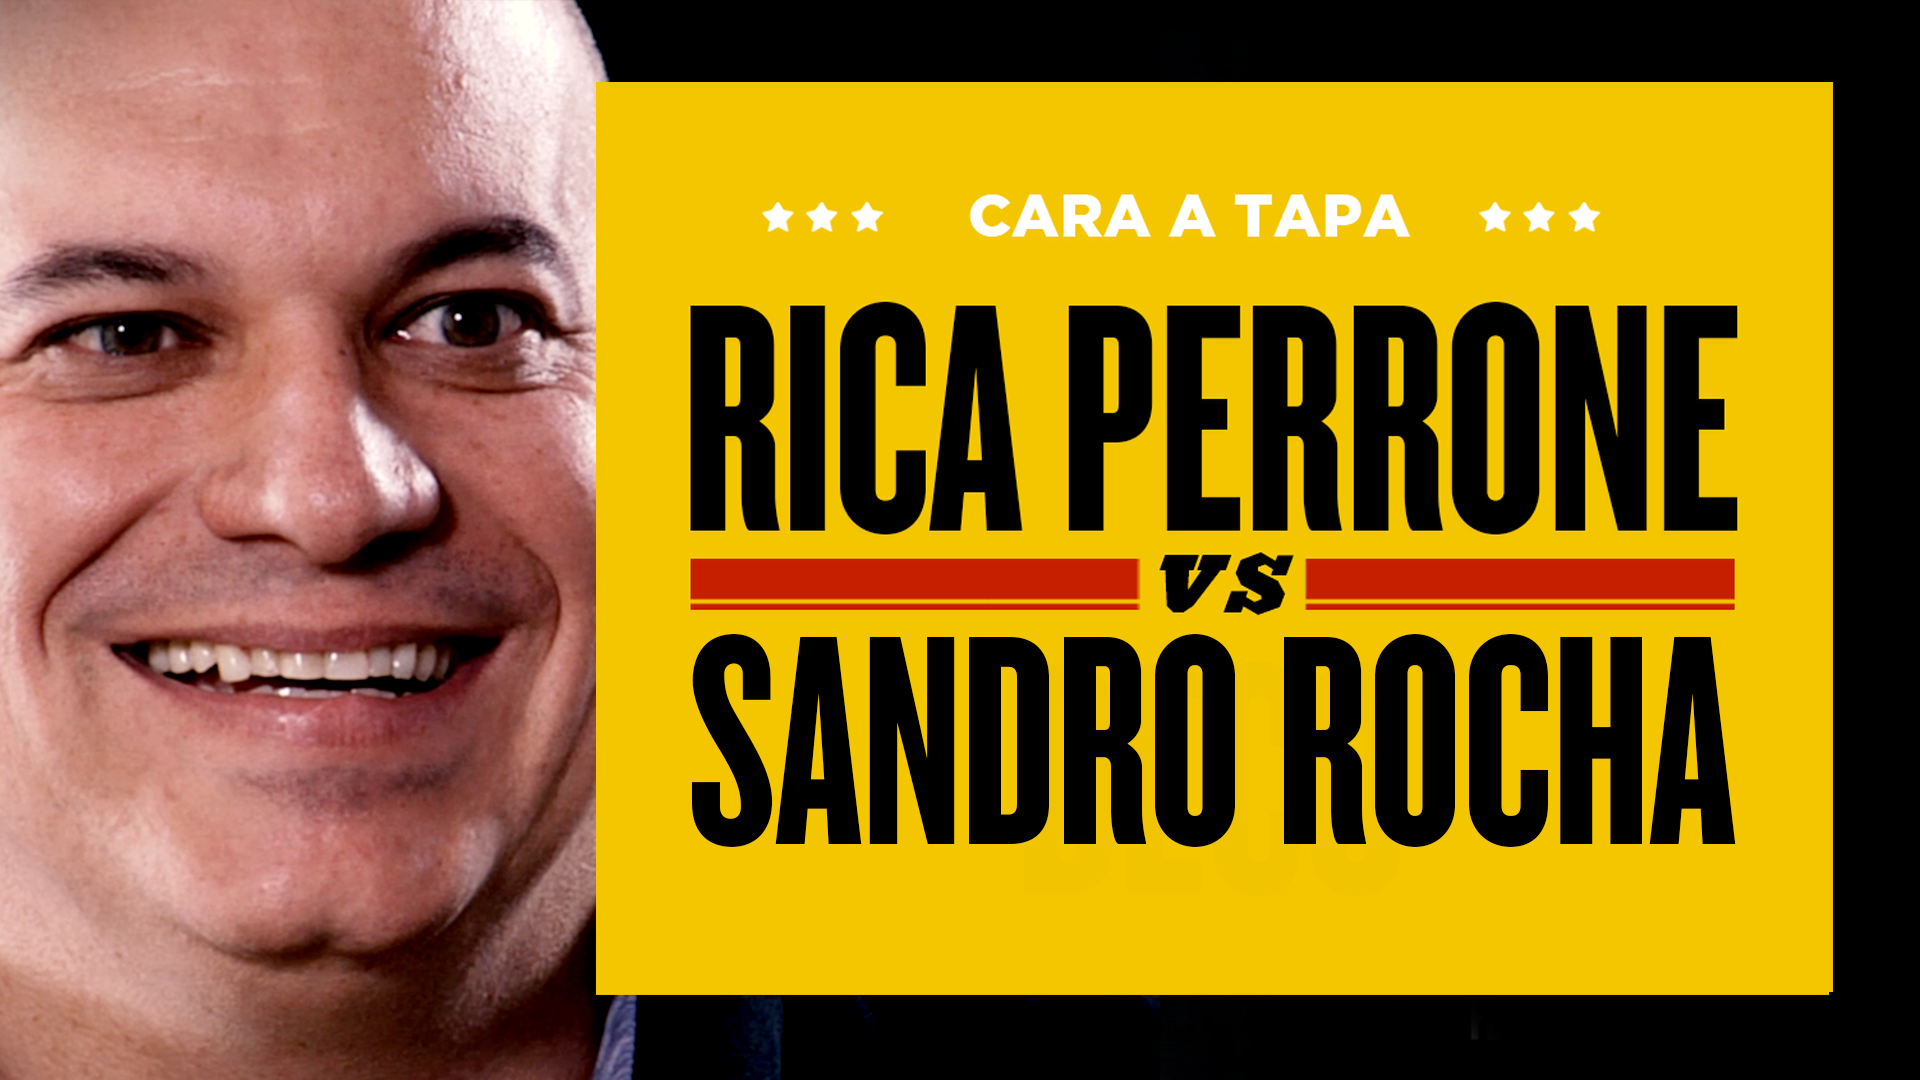 Photo of Cara a Tapa – Sandro Rocha